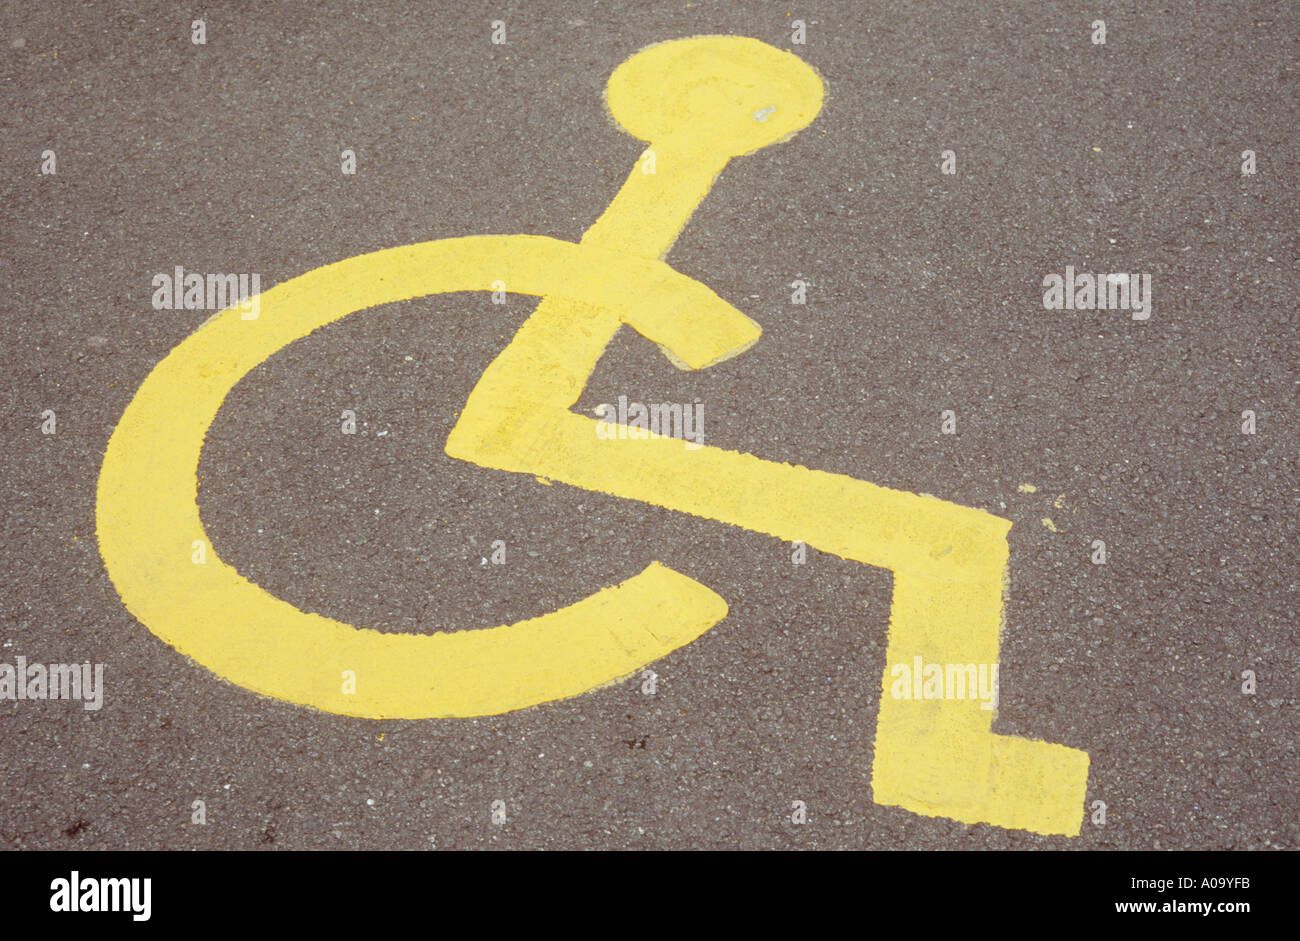 Symbol of person in wheelchair painted in yellow on road or symbol of person in wheelchair painted in yellow on road or carpark surface indicating parking bay for disabled people only buycottarizona